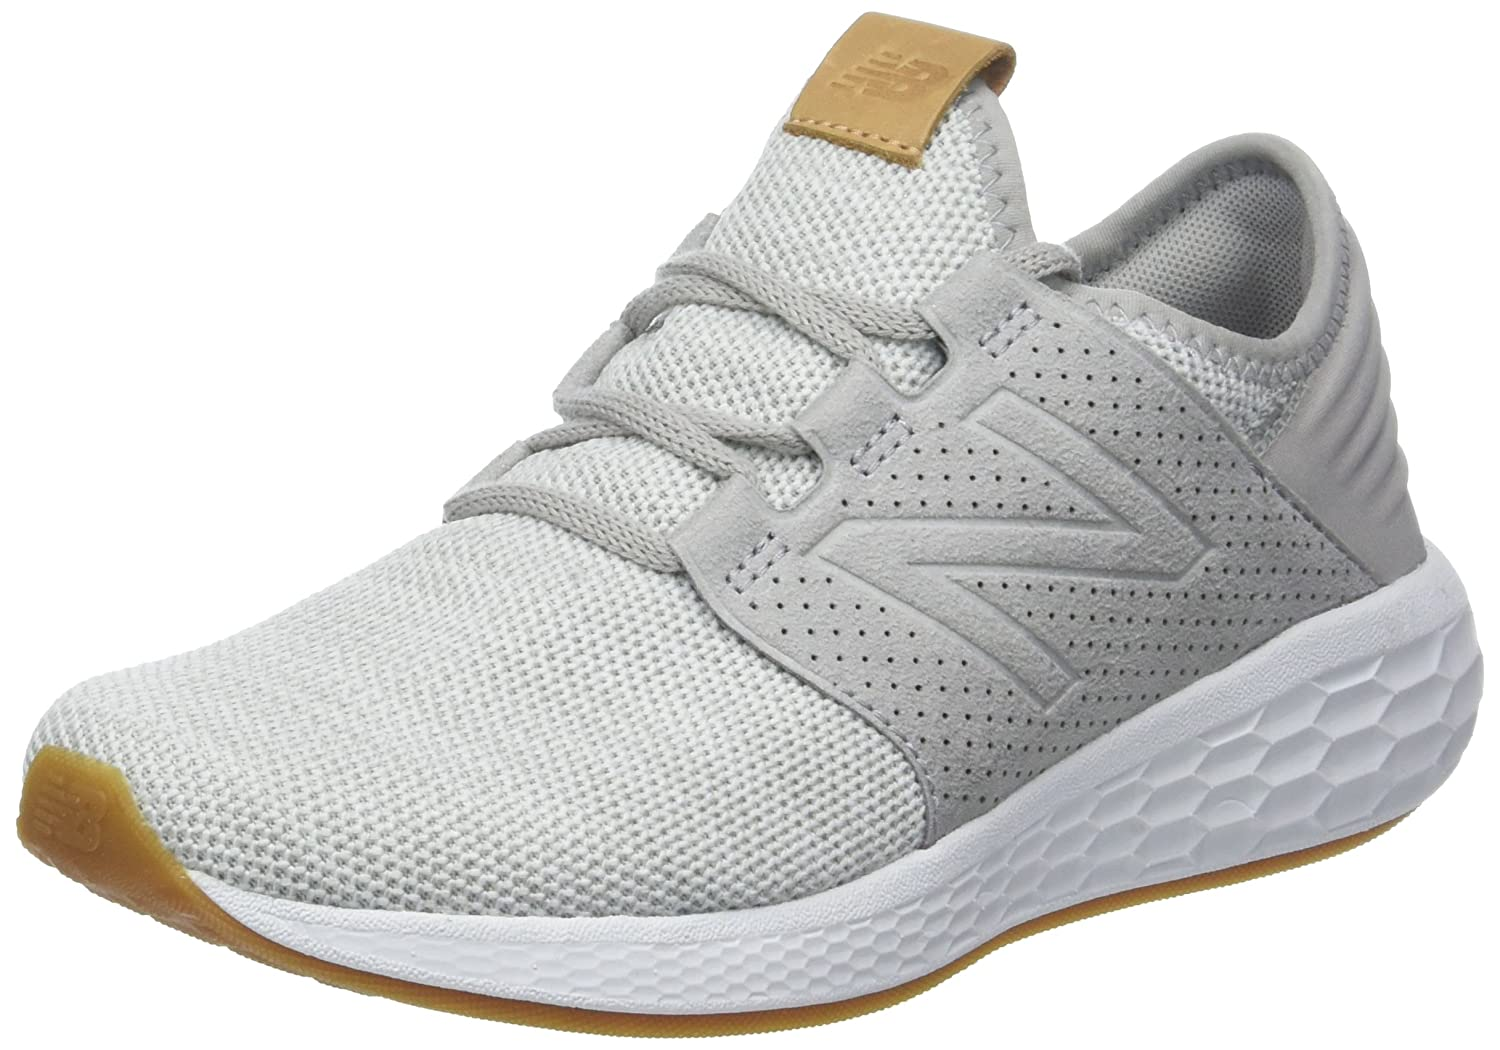 New Balance Women's Cruz V2 Fresh Foam Running Shoe B075R7JPHL 10.5 B(M) US|Rain Cloud